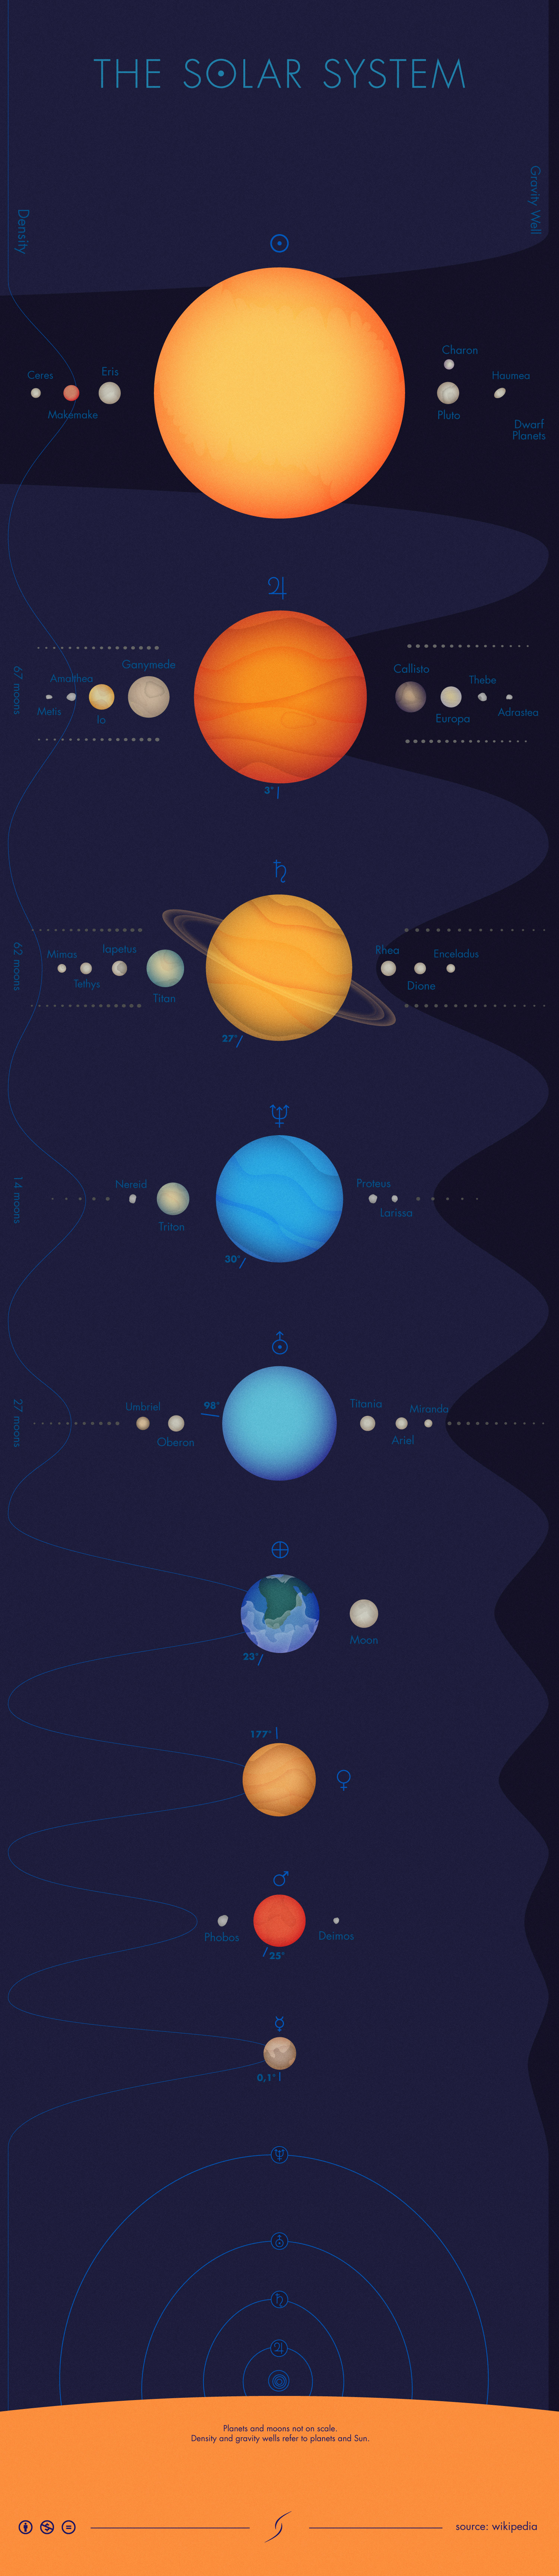 THE SOLAR SYSTEM | Visual.ly